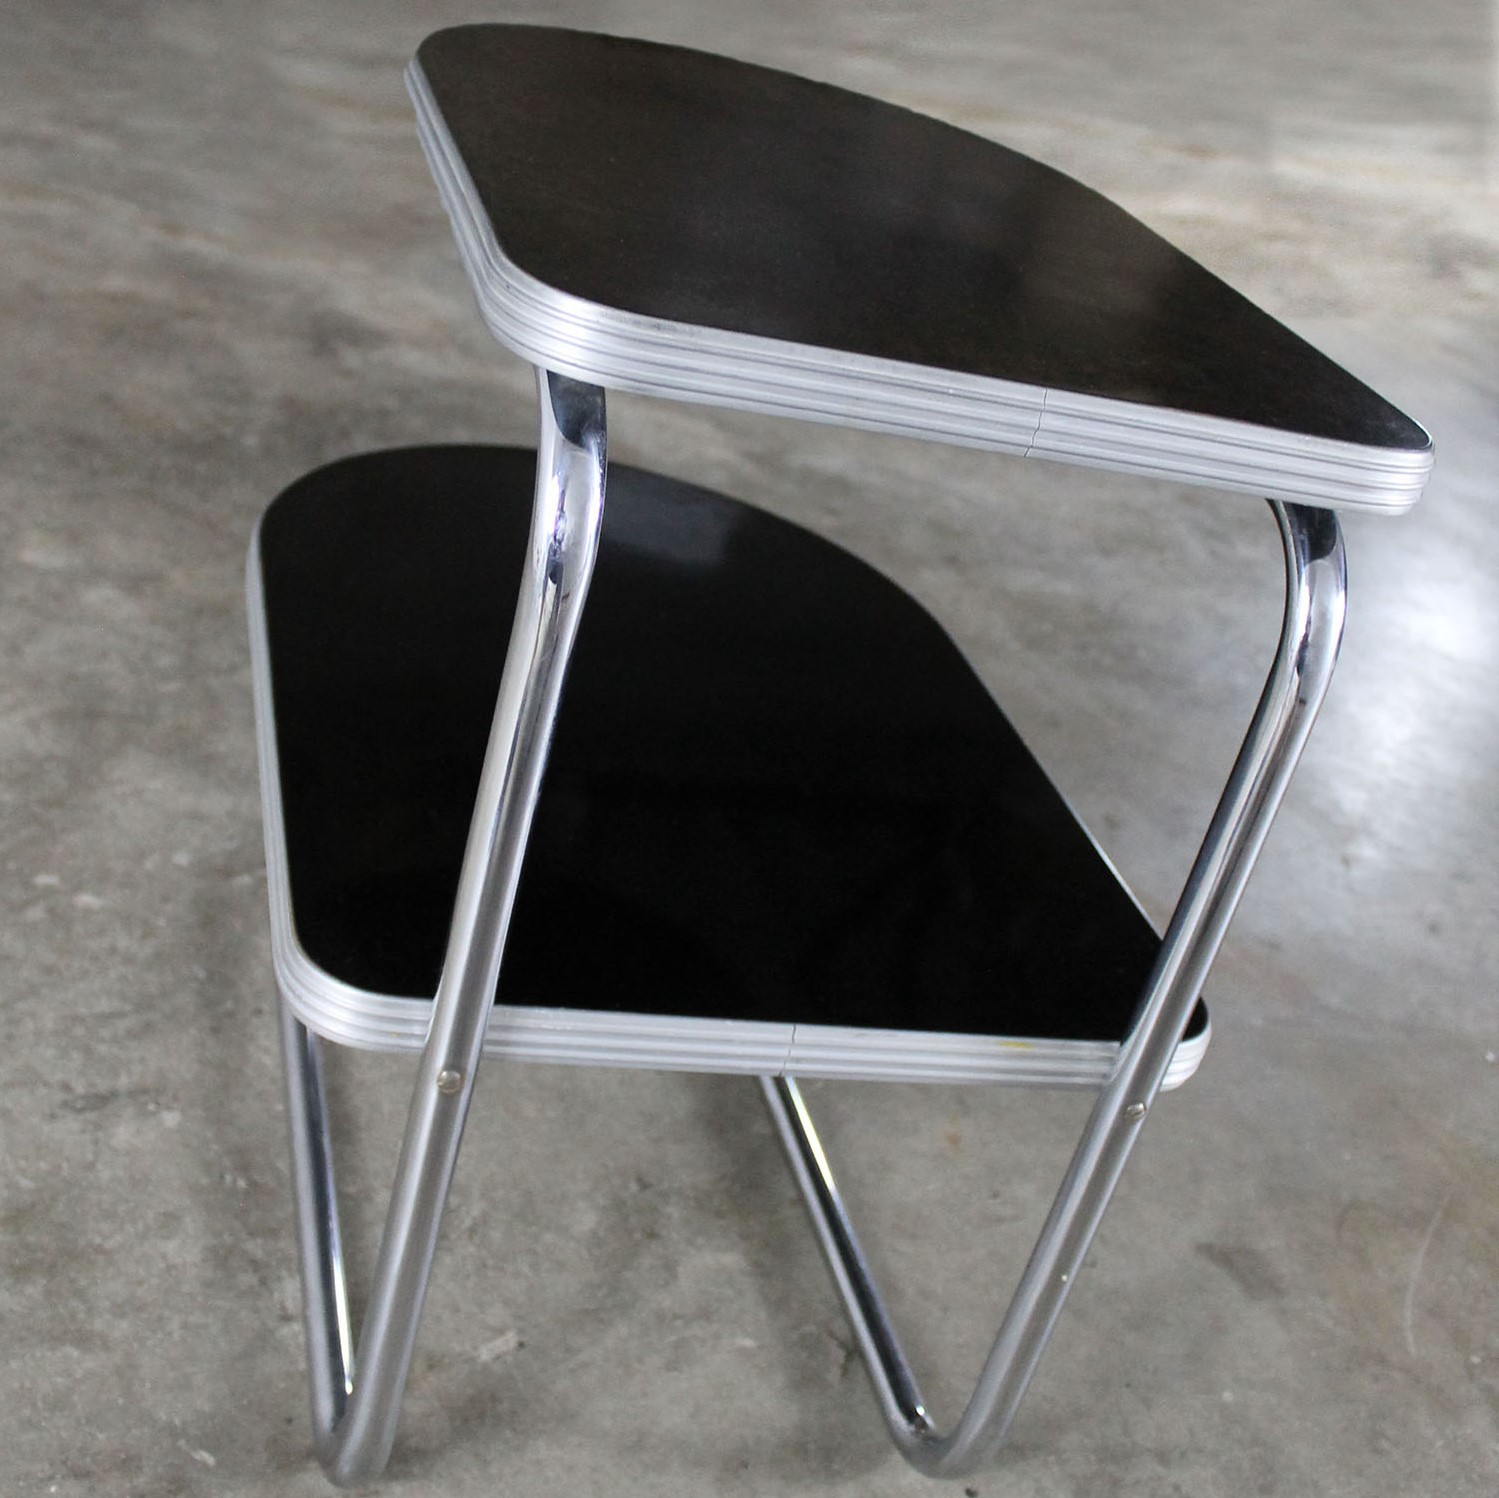 Art Deco Machine Age Streamline Moderne Chrome And Black Two Tiered End  Table By Duro Chrome